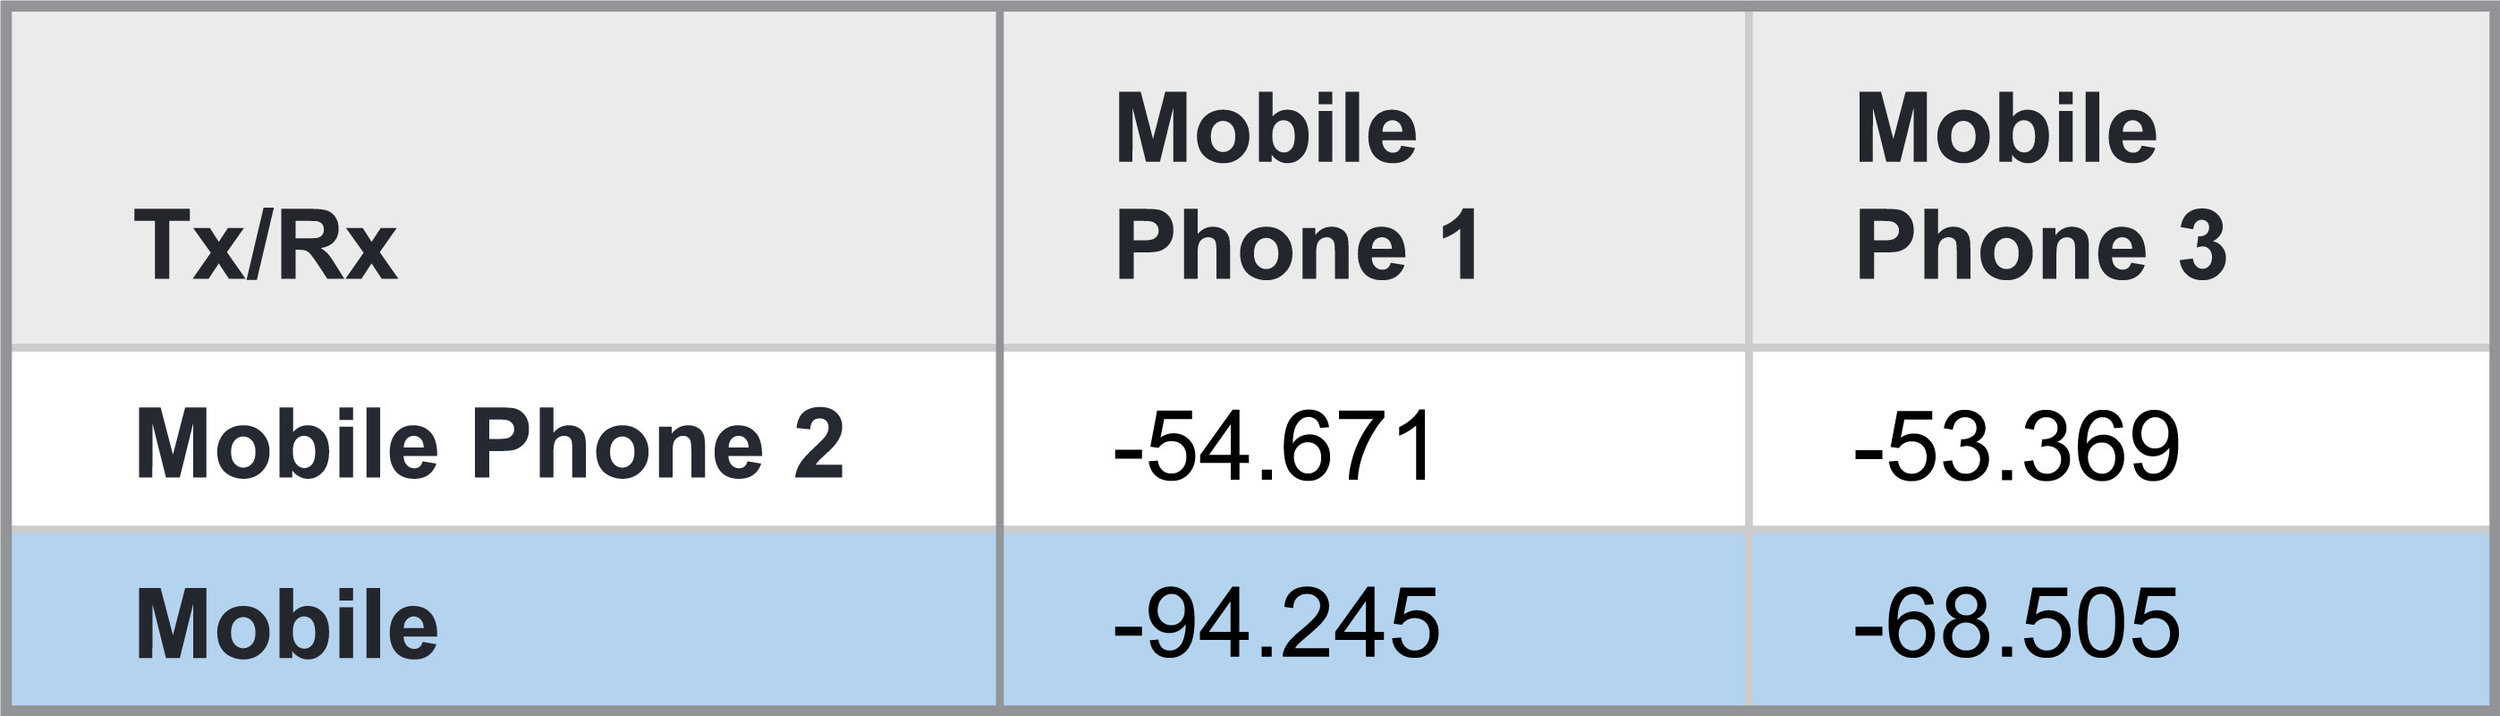 Table 2: Received power (dBm) in the mobile phone ad hoc network.